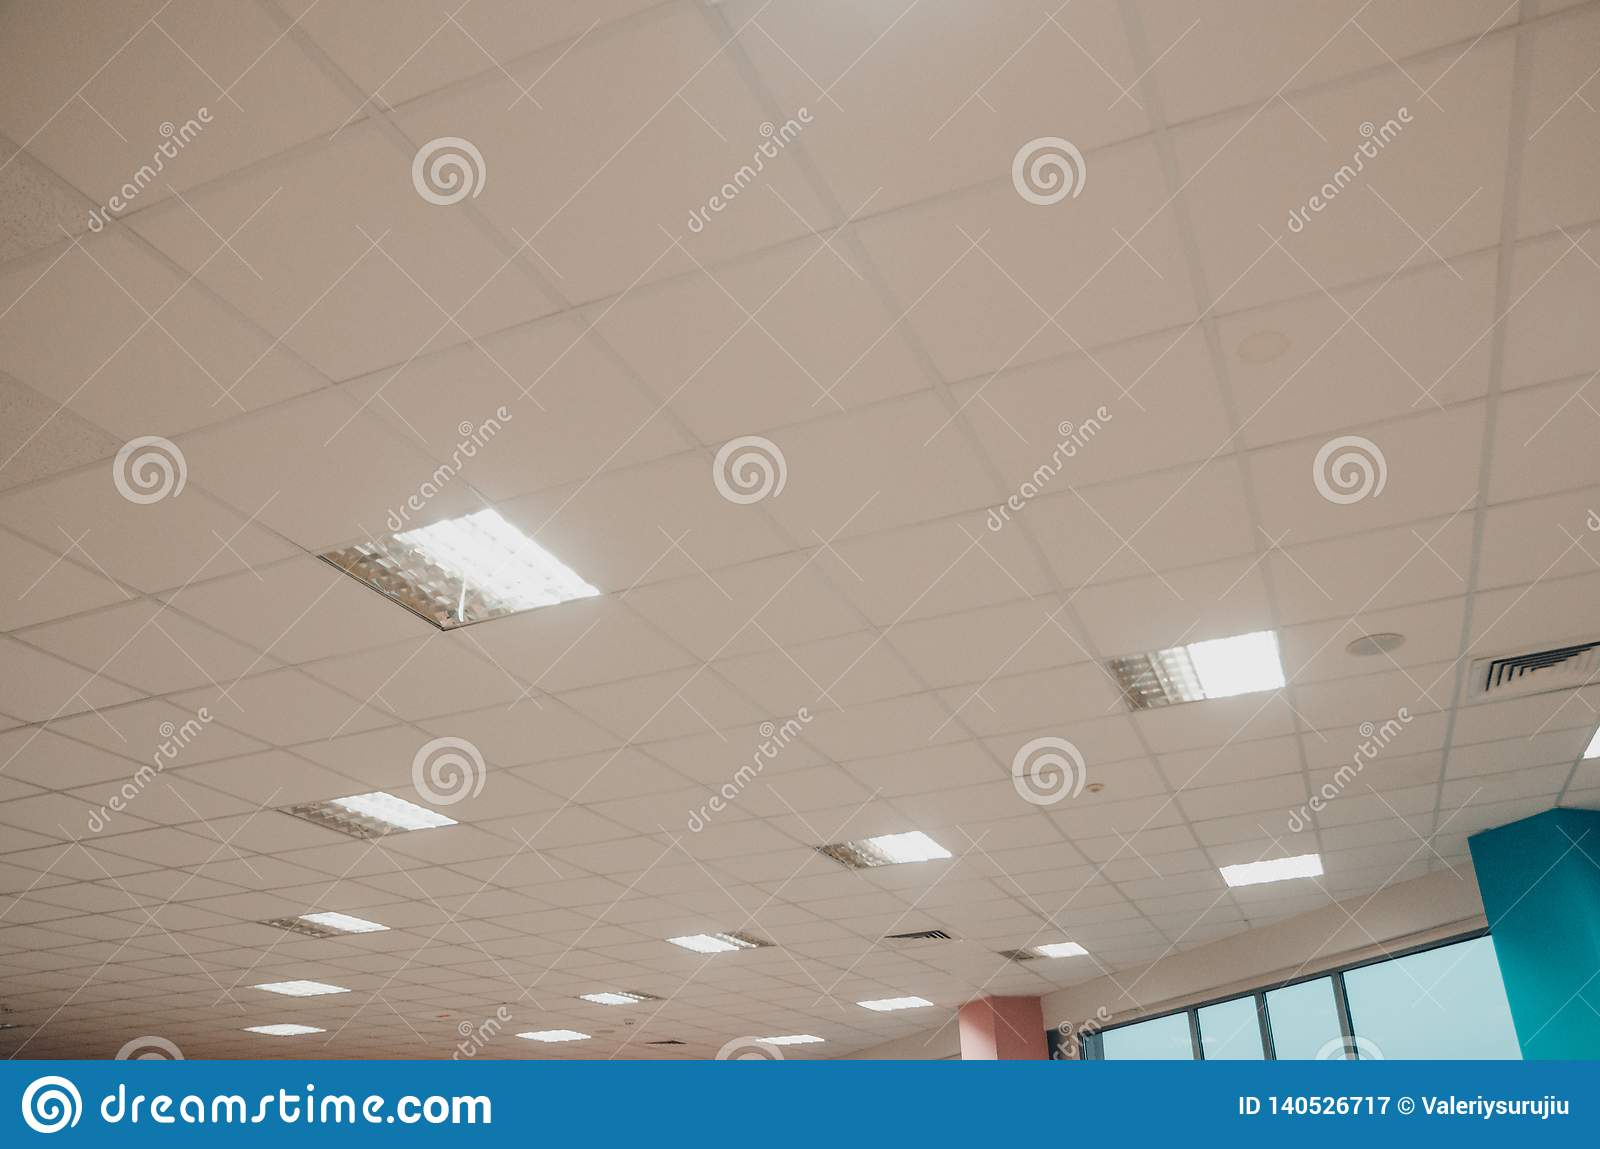 A ceiling with lamps